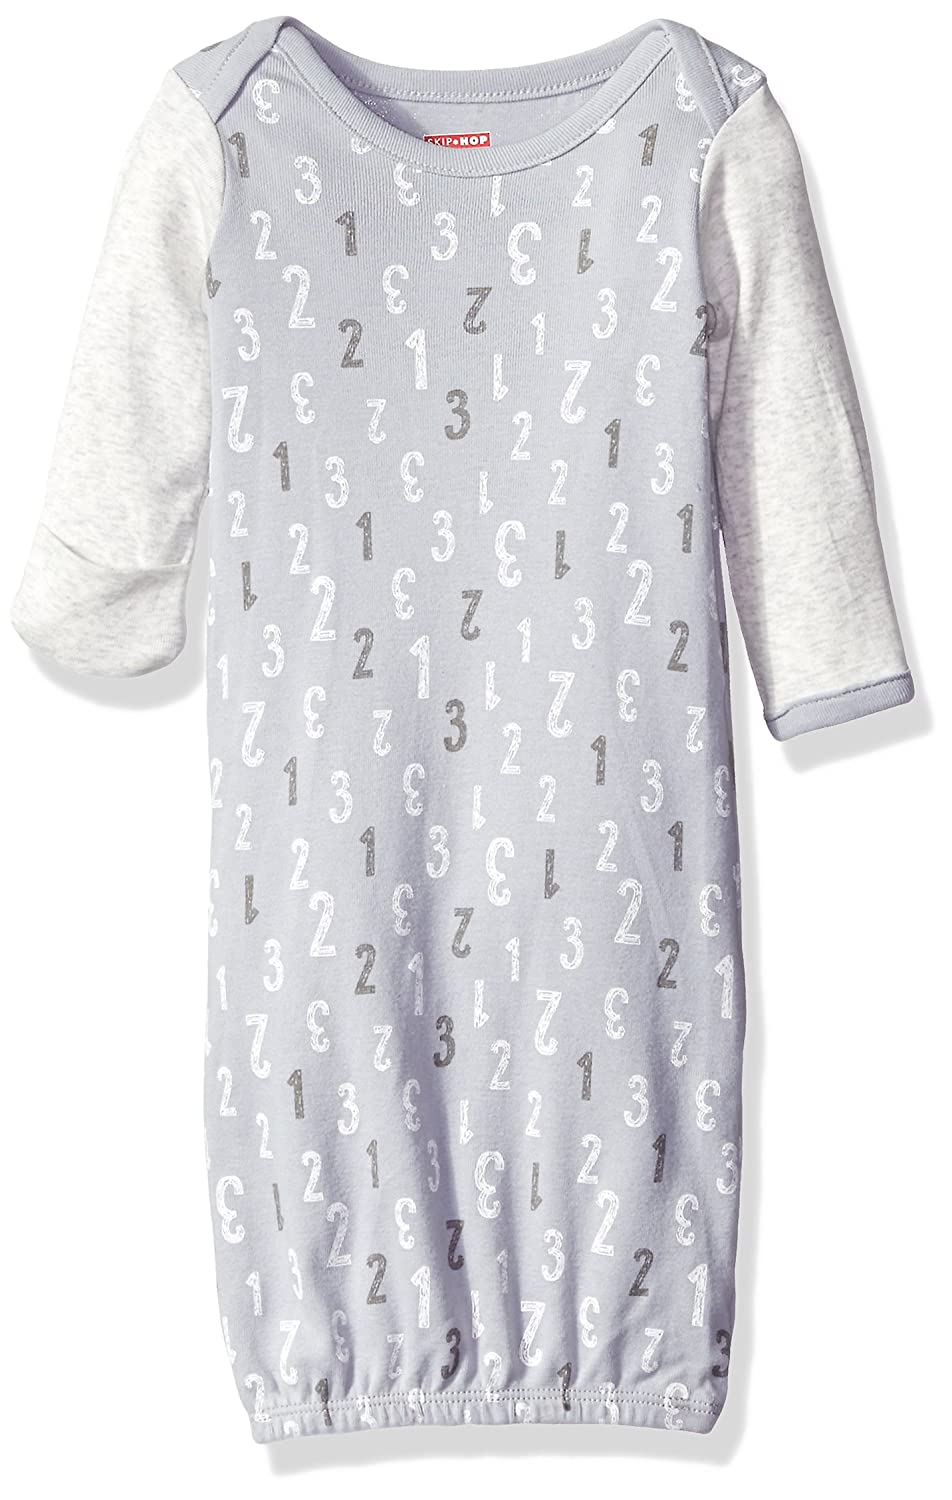 Amazon.com: Skip Hop Baby Gown, Grey, One Size: Clothing